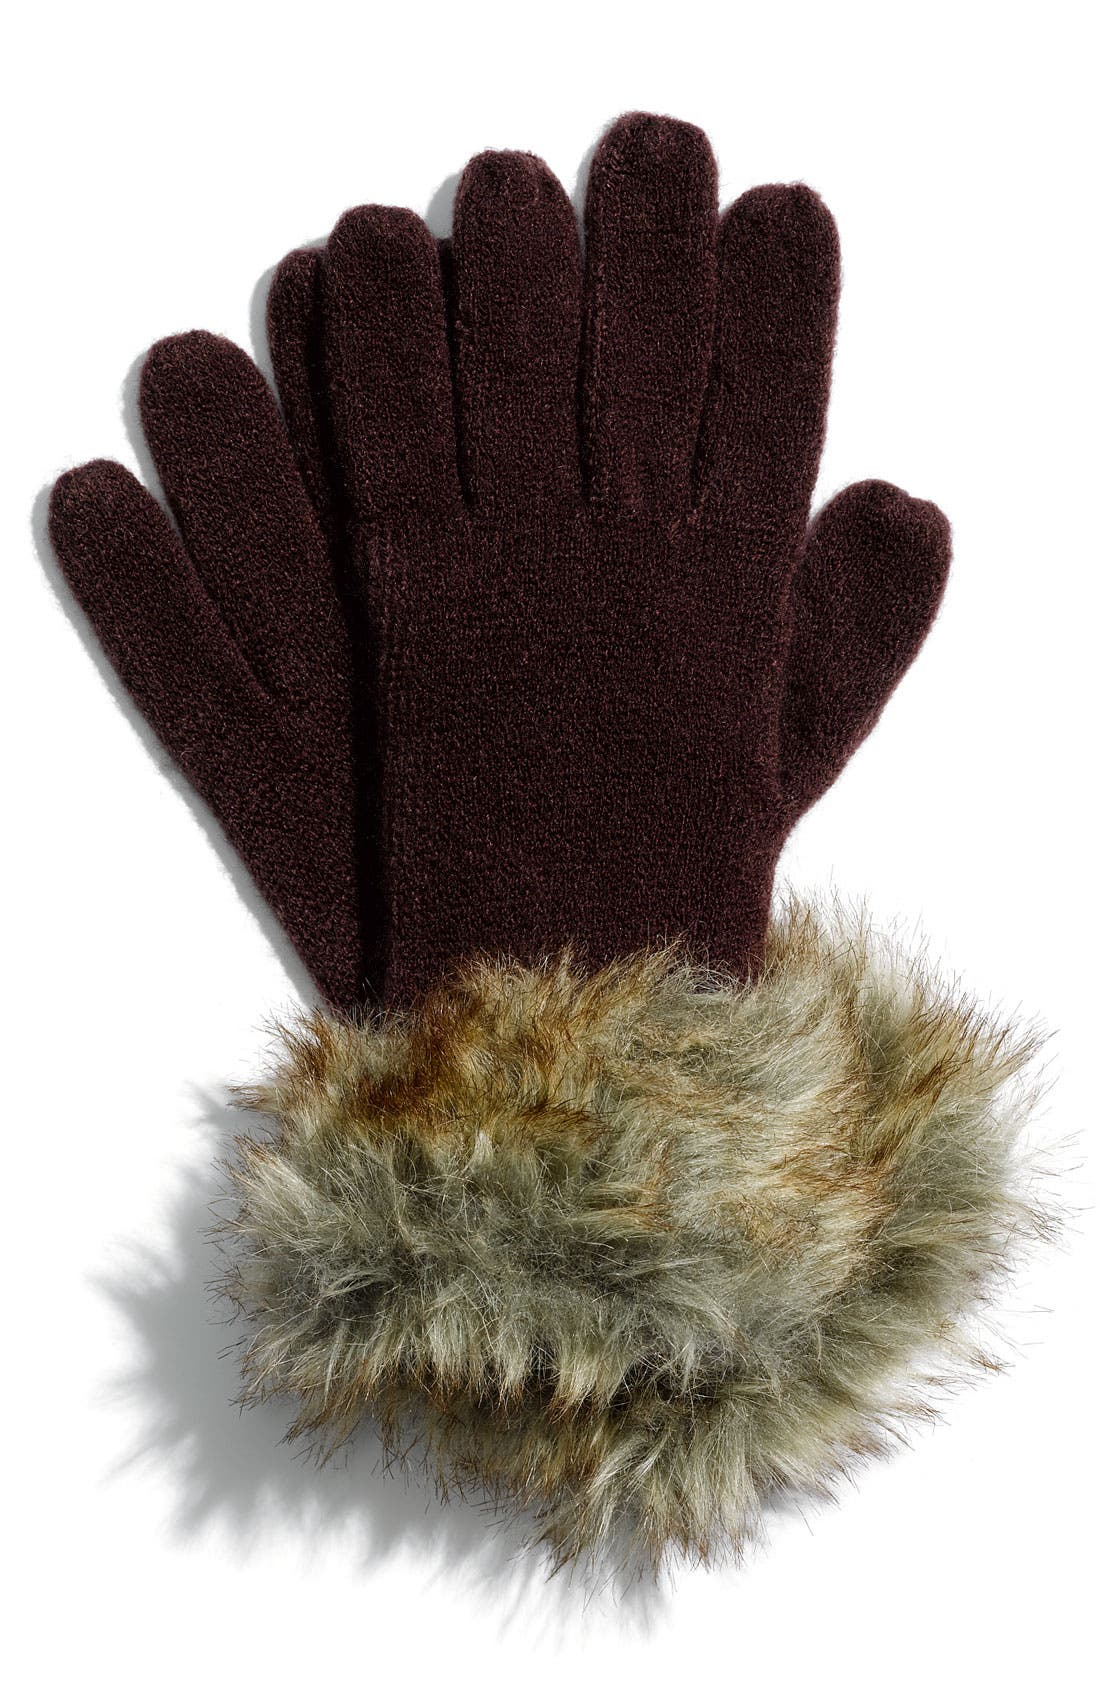 Alternate Image 1 Selected - The Accessory Collective Faux Fur Trimmed Knit Gloves